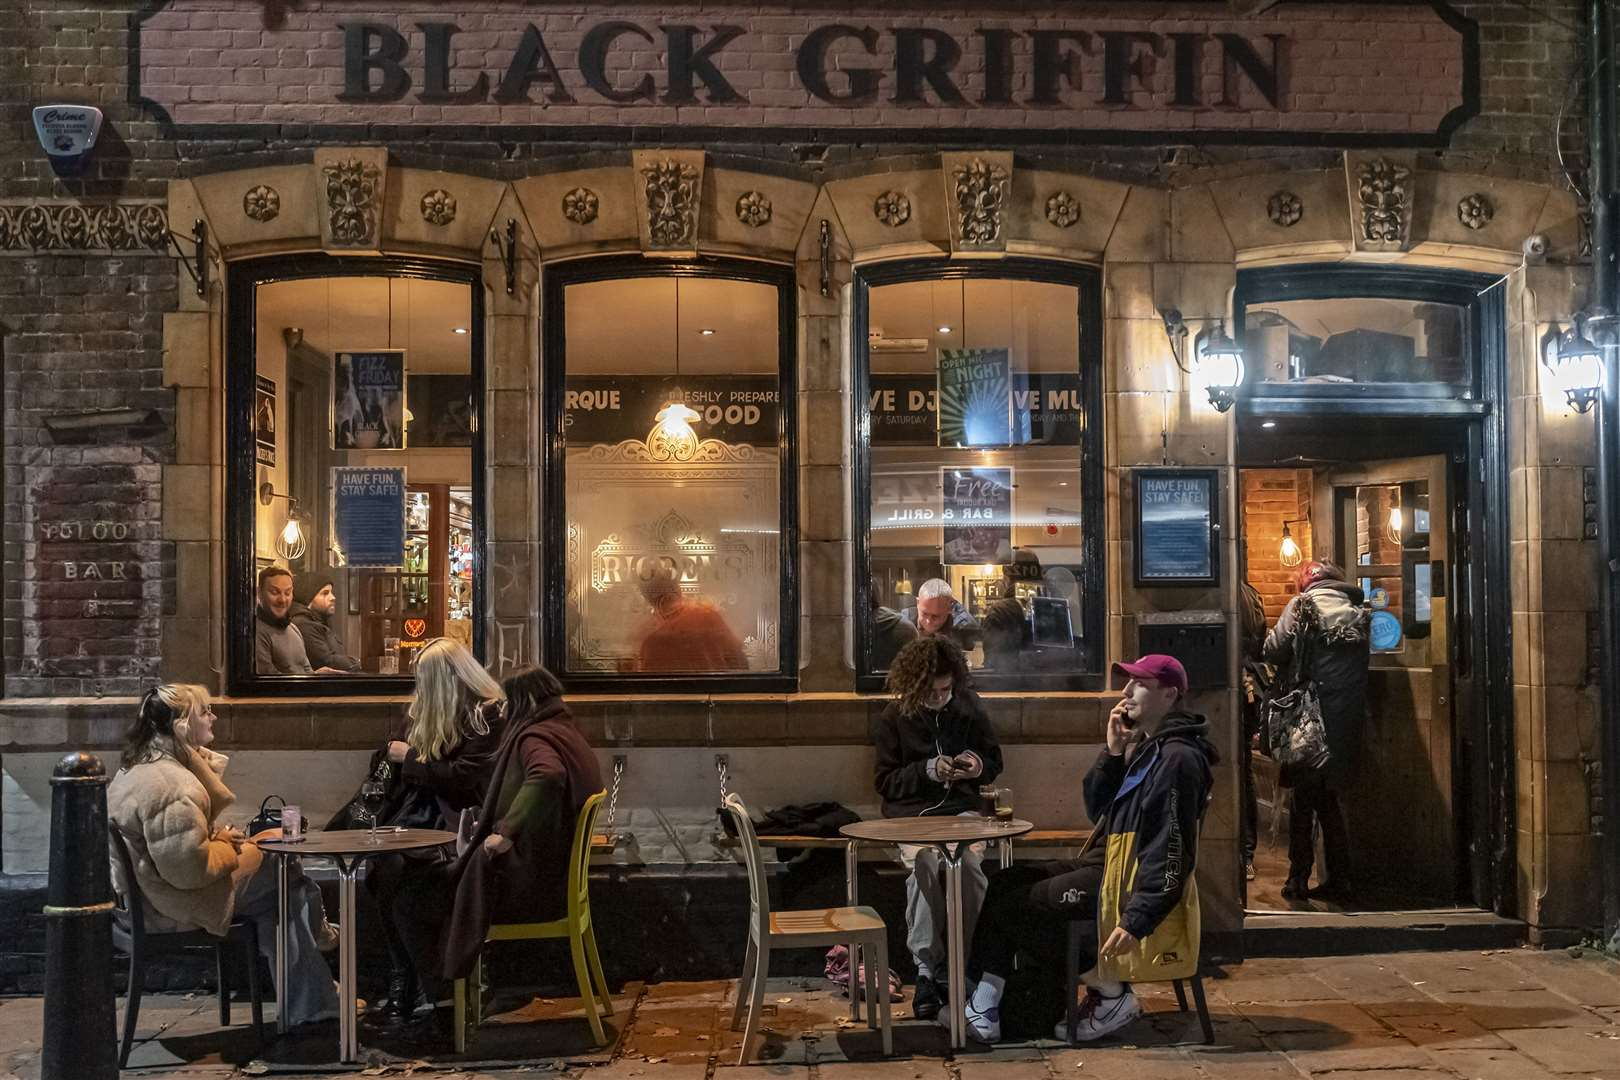 It was busy at the Black Griffin too. Pictures: Jo Court